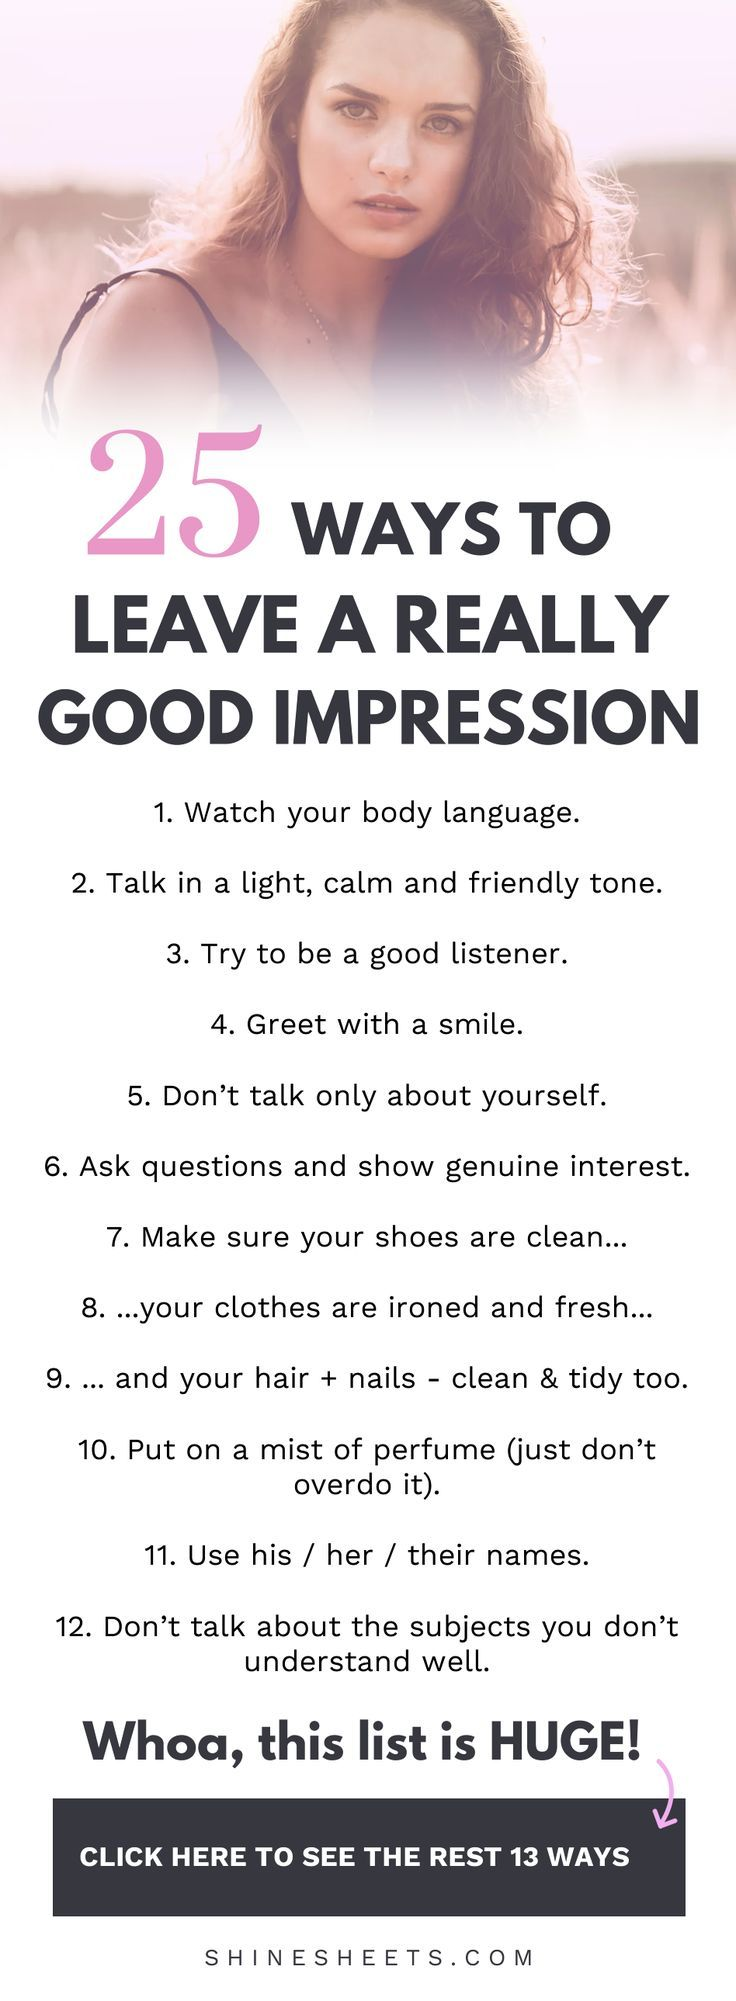 25 Ways To Leave a Good Impression